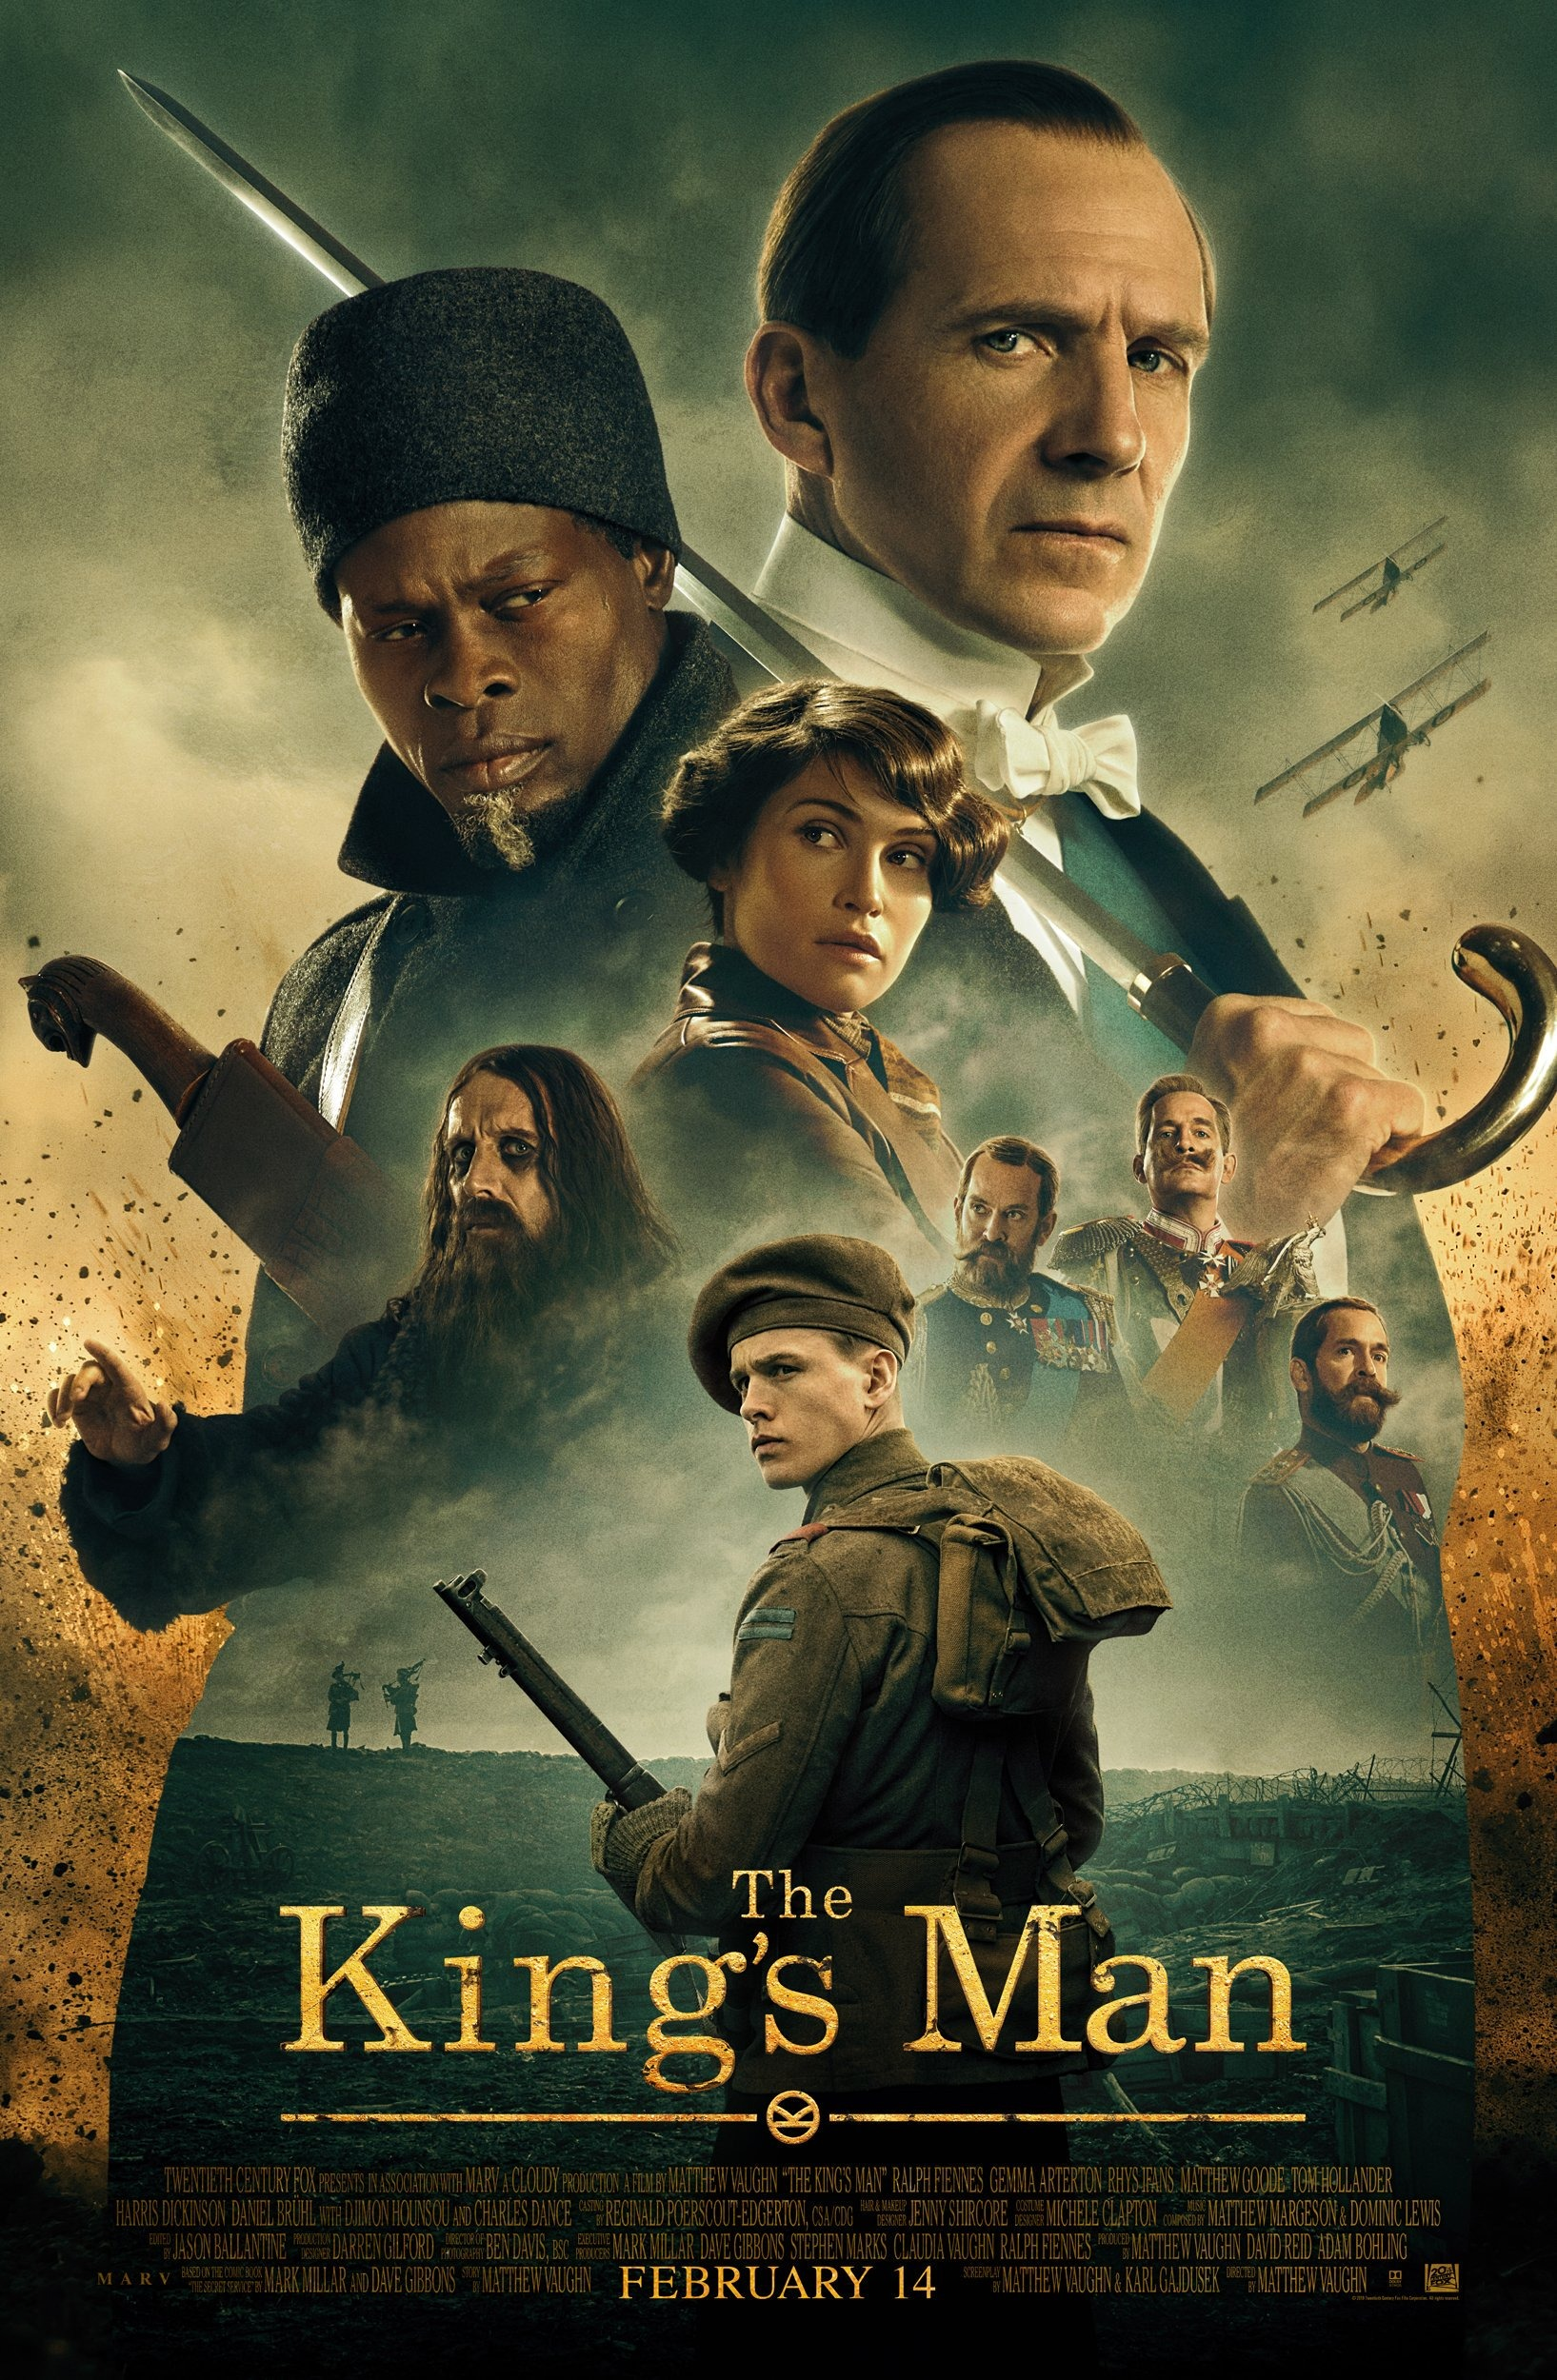 the kings man poster 2020